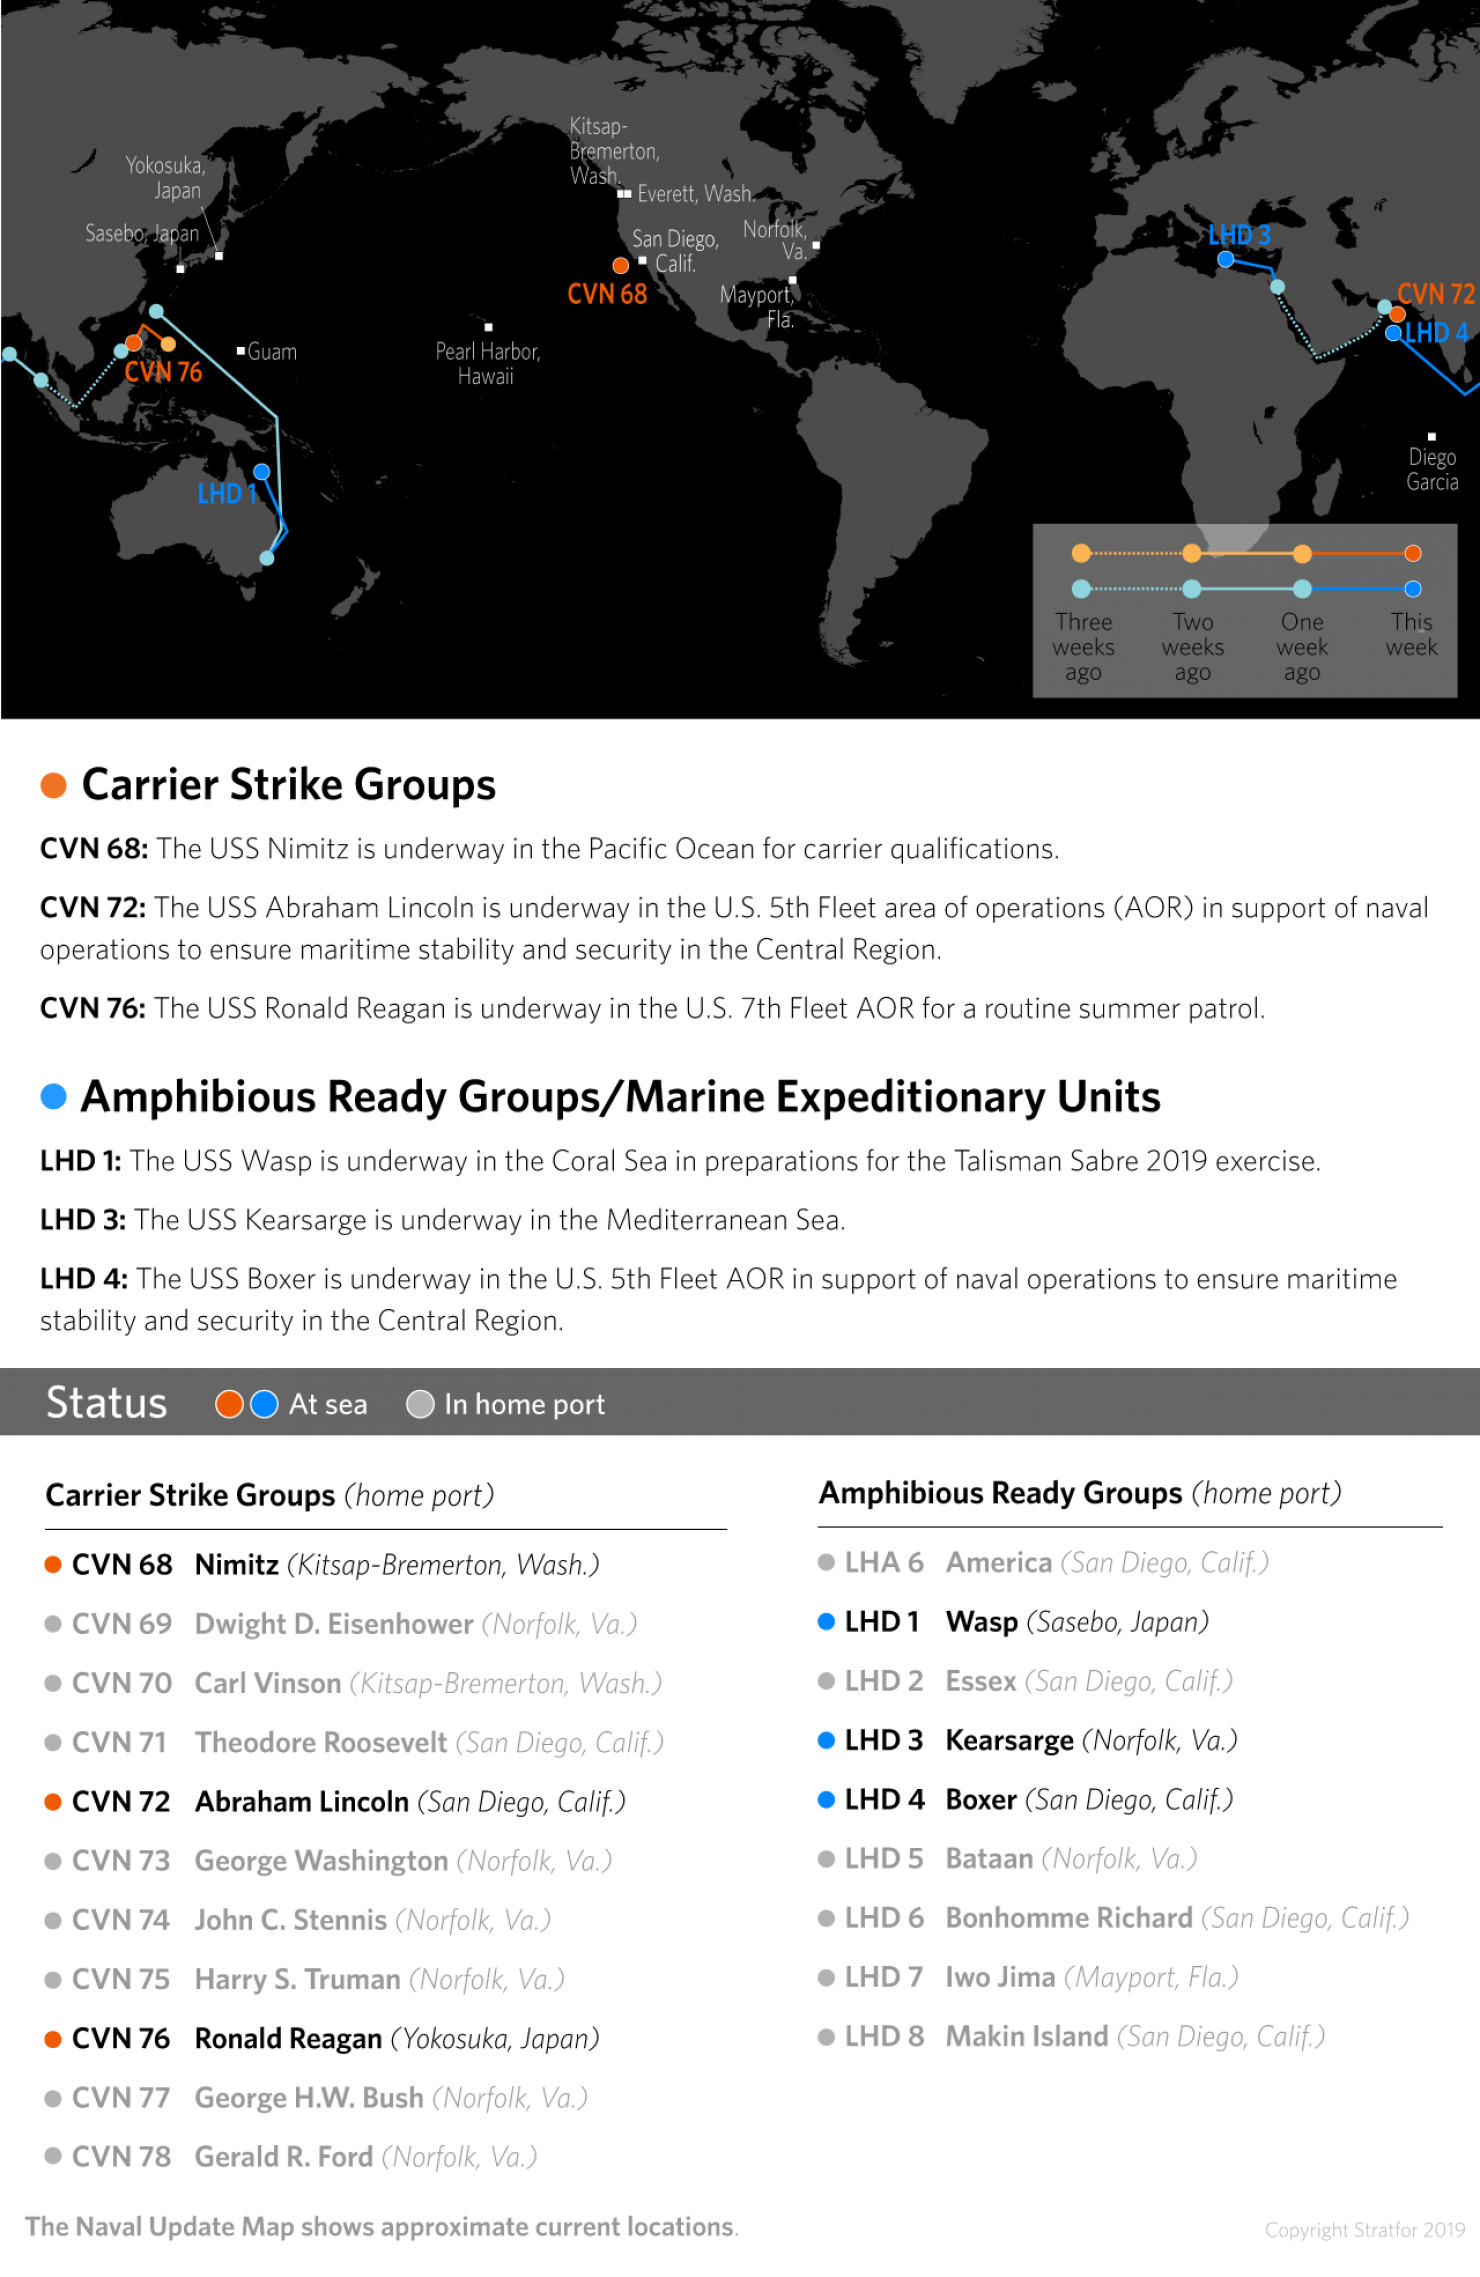 A map showing the location of U.S. Carrier Strike Groups and Amphibious Ready Groups/Marine Expeditionary Units